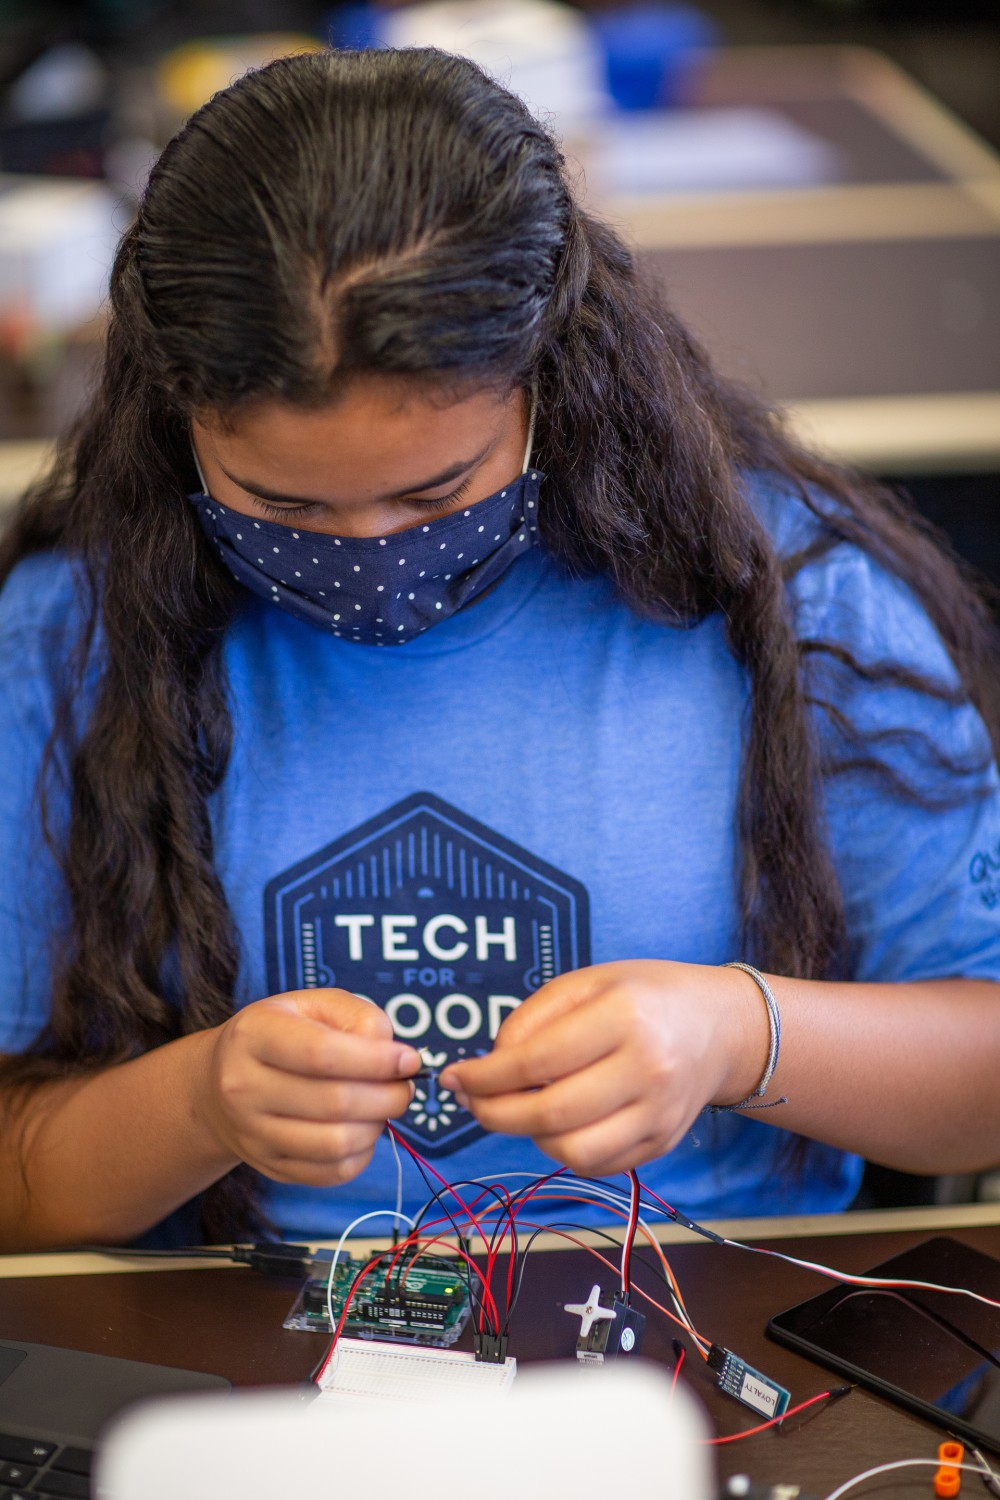 child working on a technology project